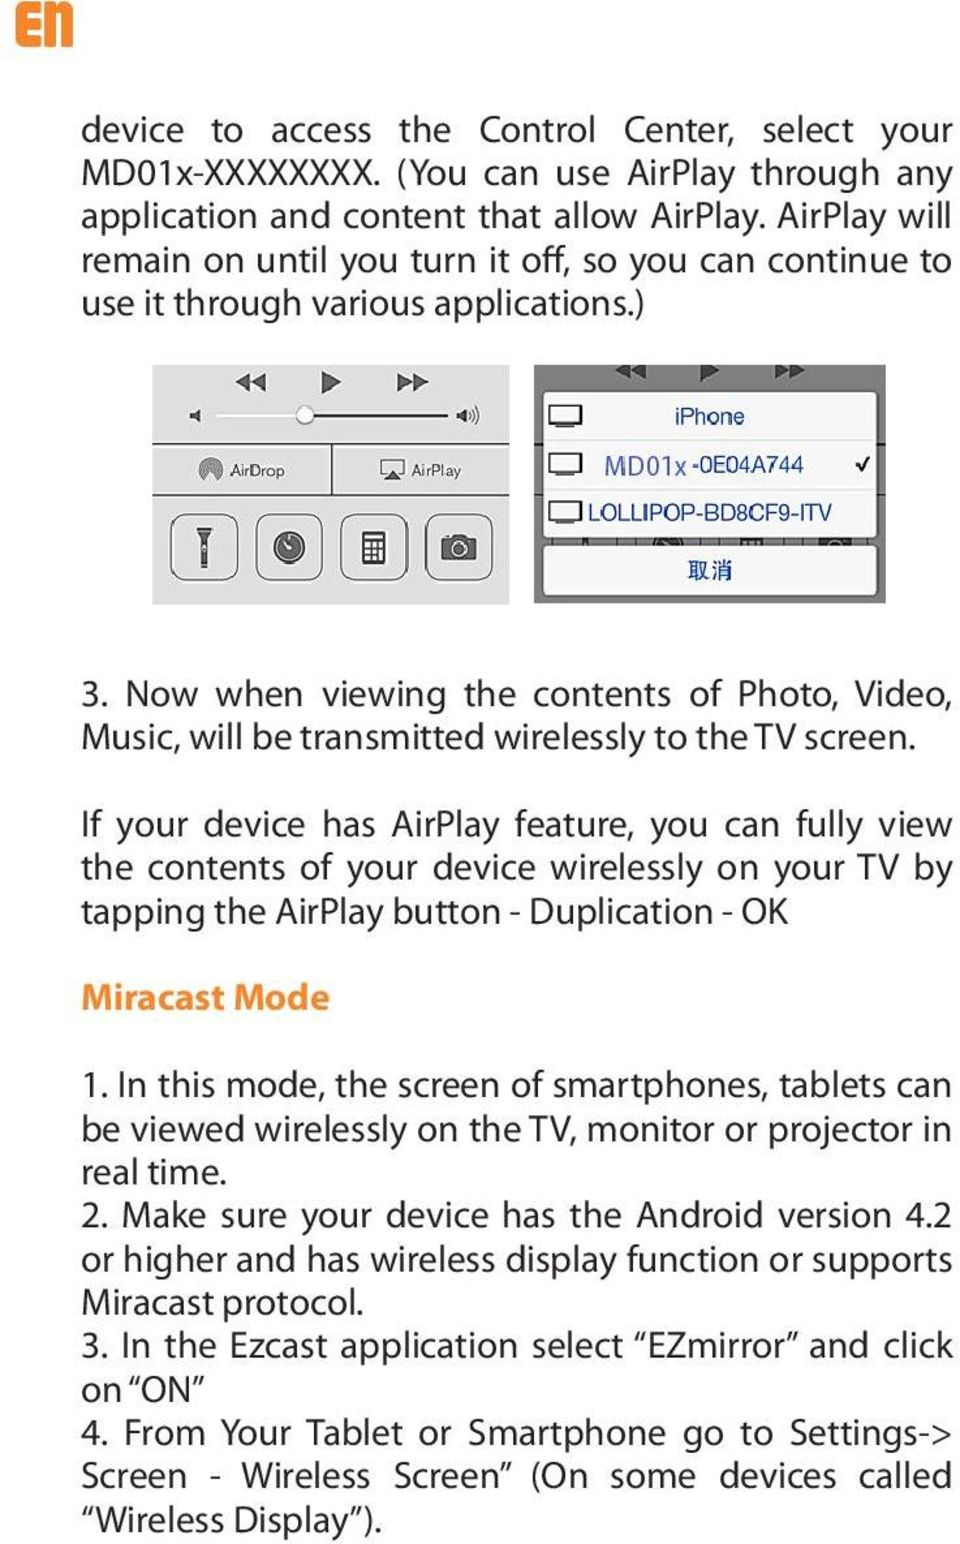 Now when viewing the contents of Photo, Video, Music, will be transmitted wirelessly to the TV screen.